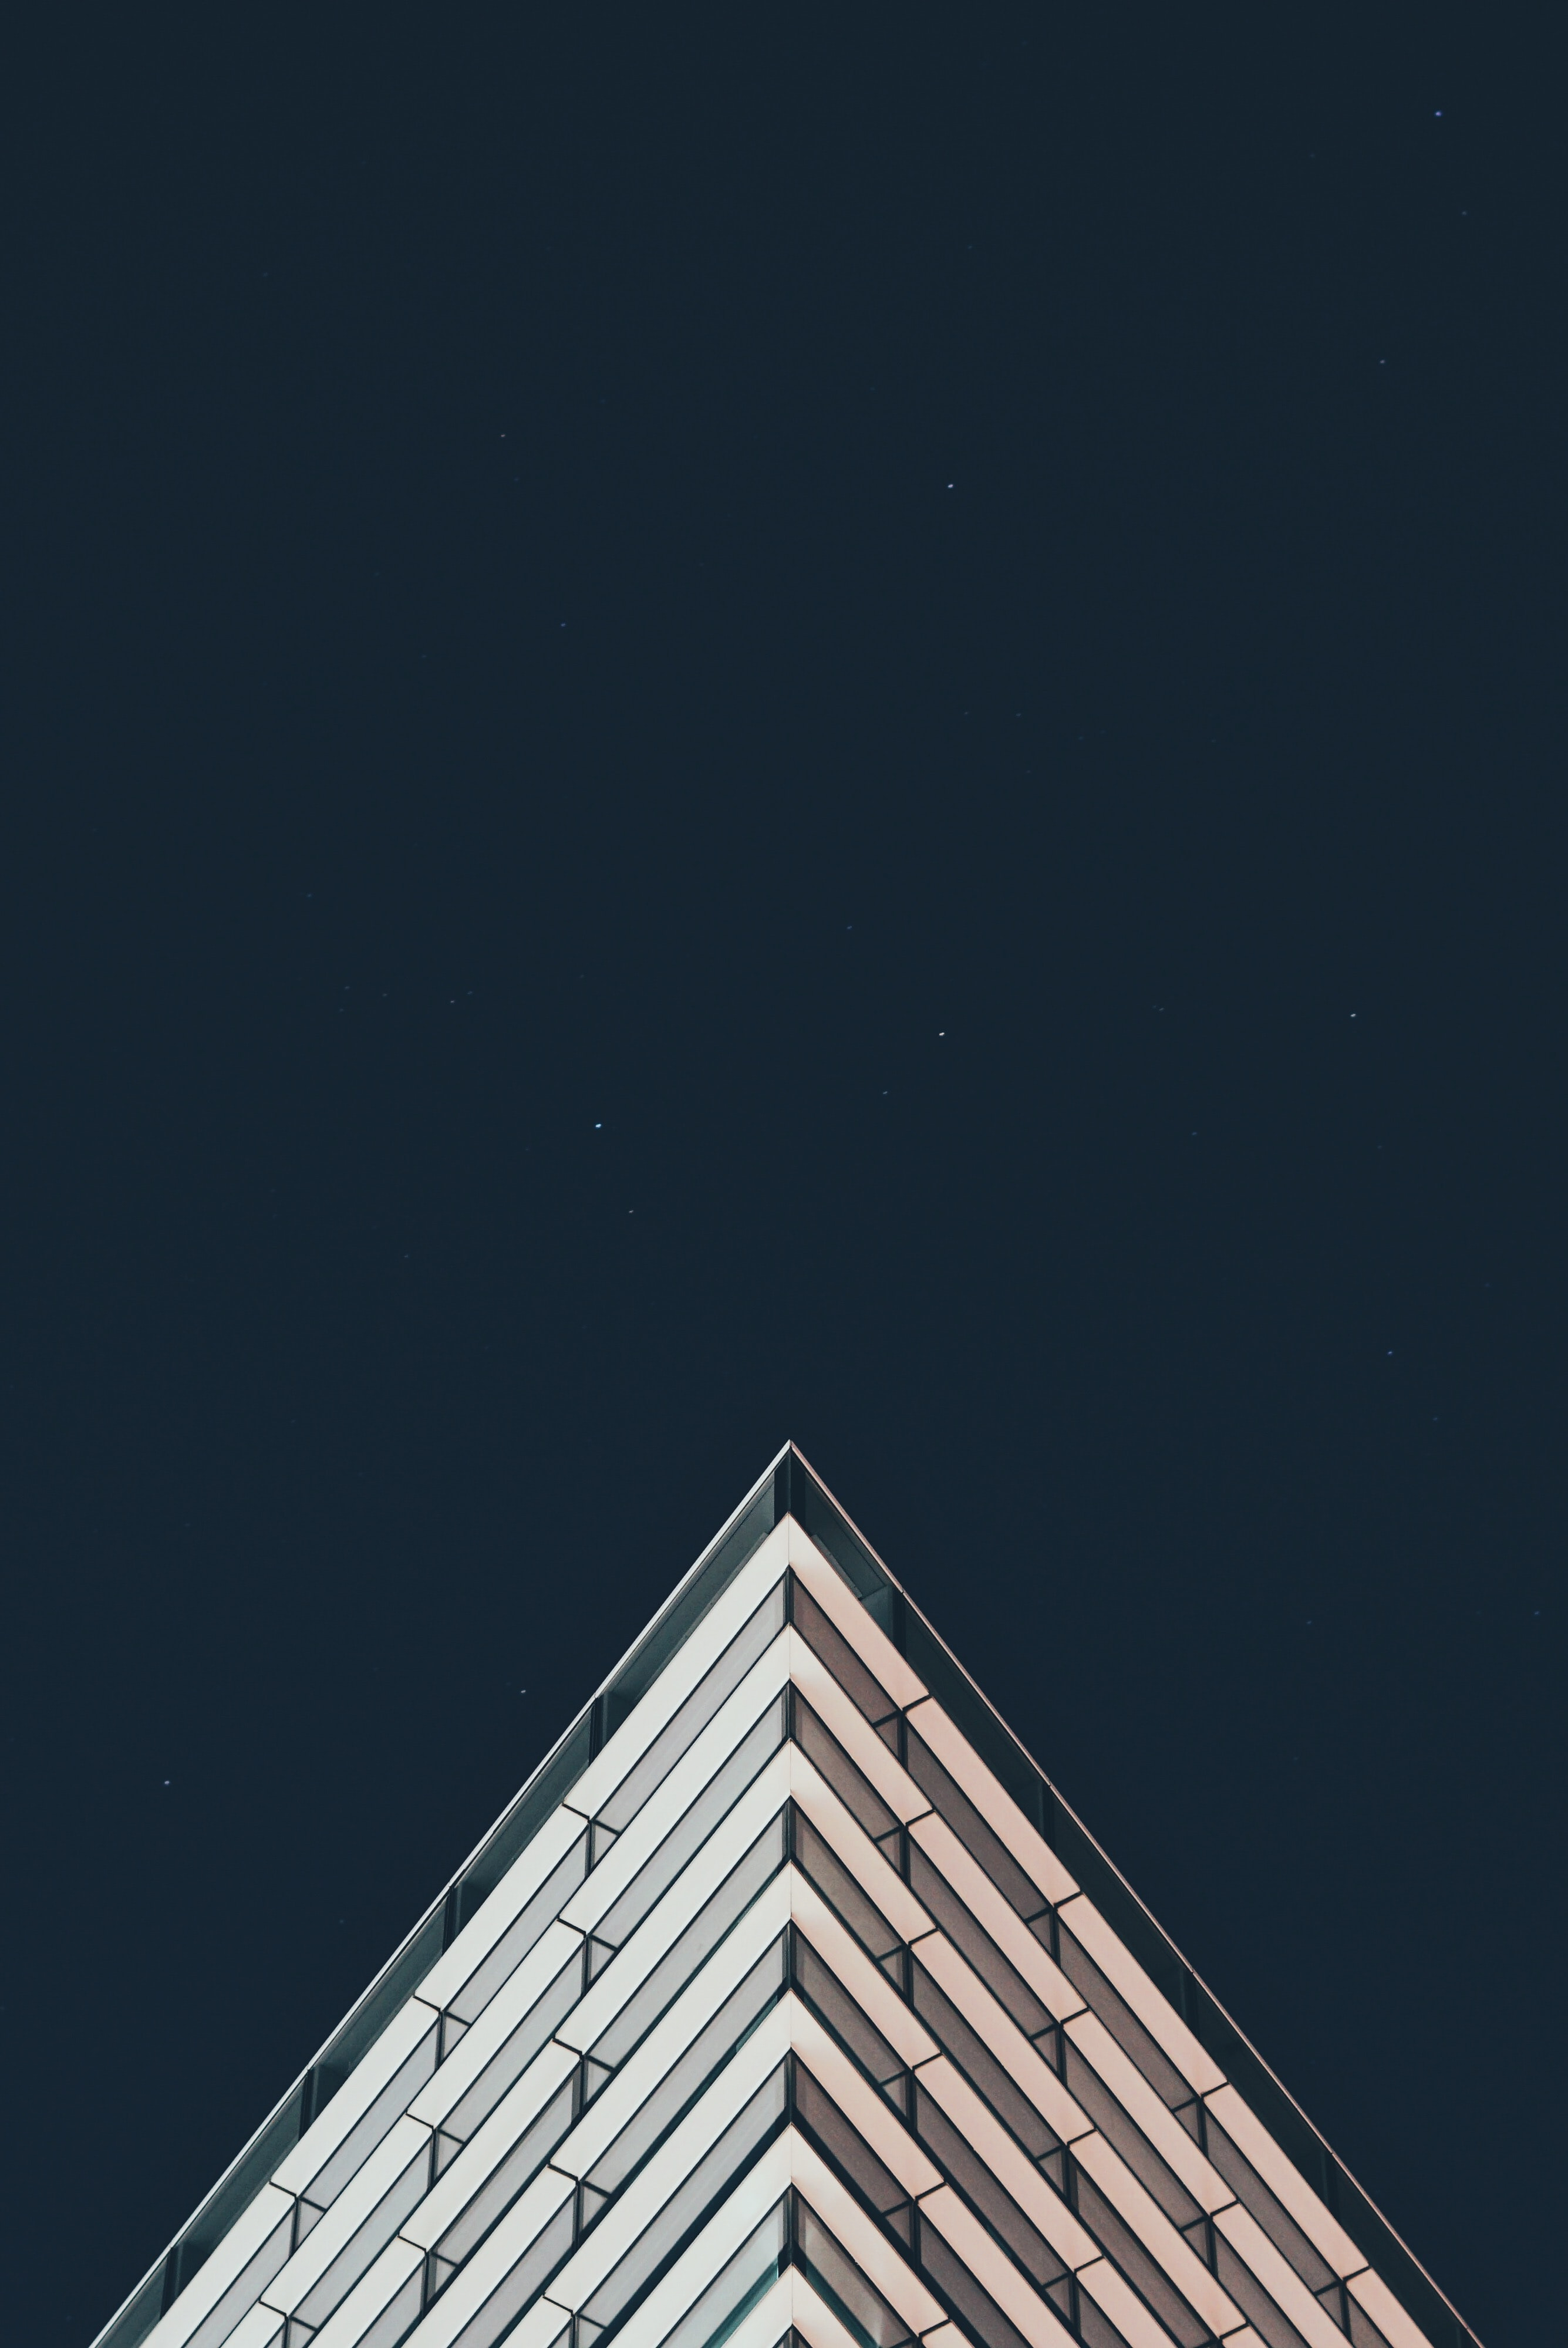 The sharp top corner of a modern building seen against the night sky